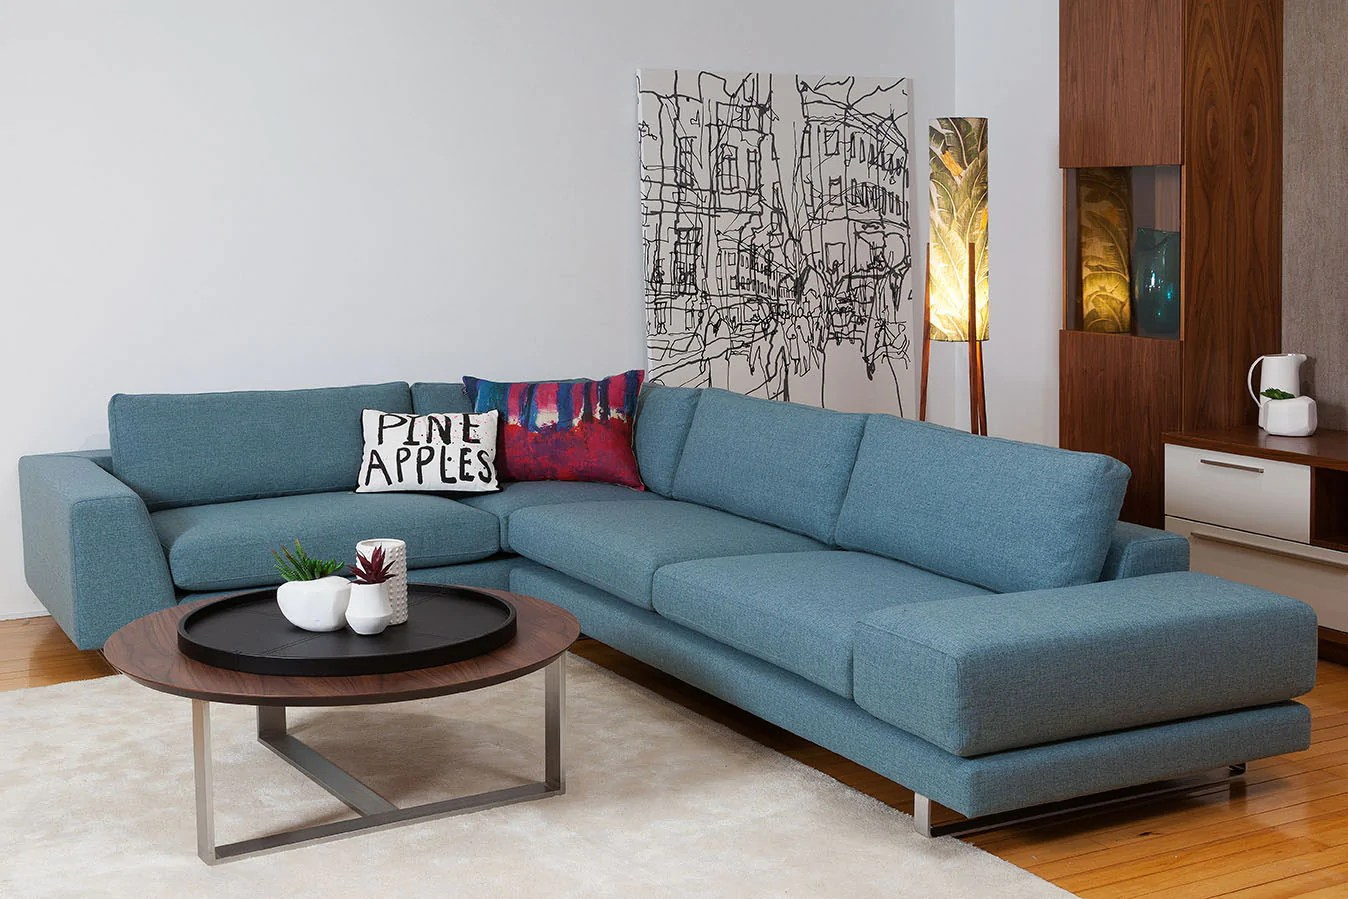 Modular Sofa Gumtree Perth Modular Sofas Perth Baci Living Room